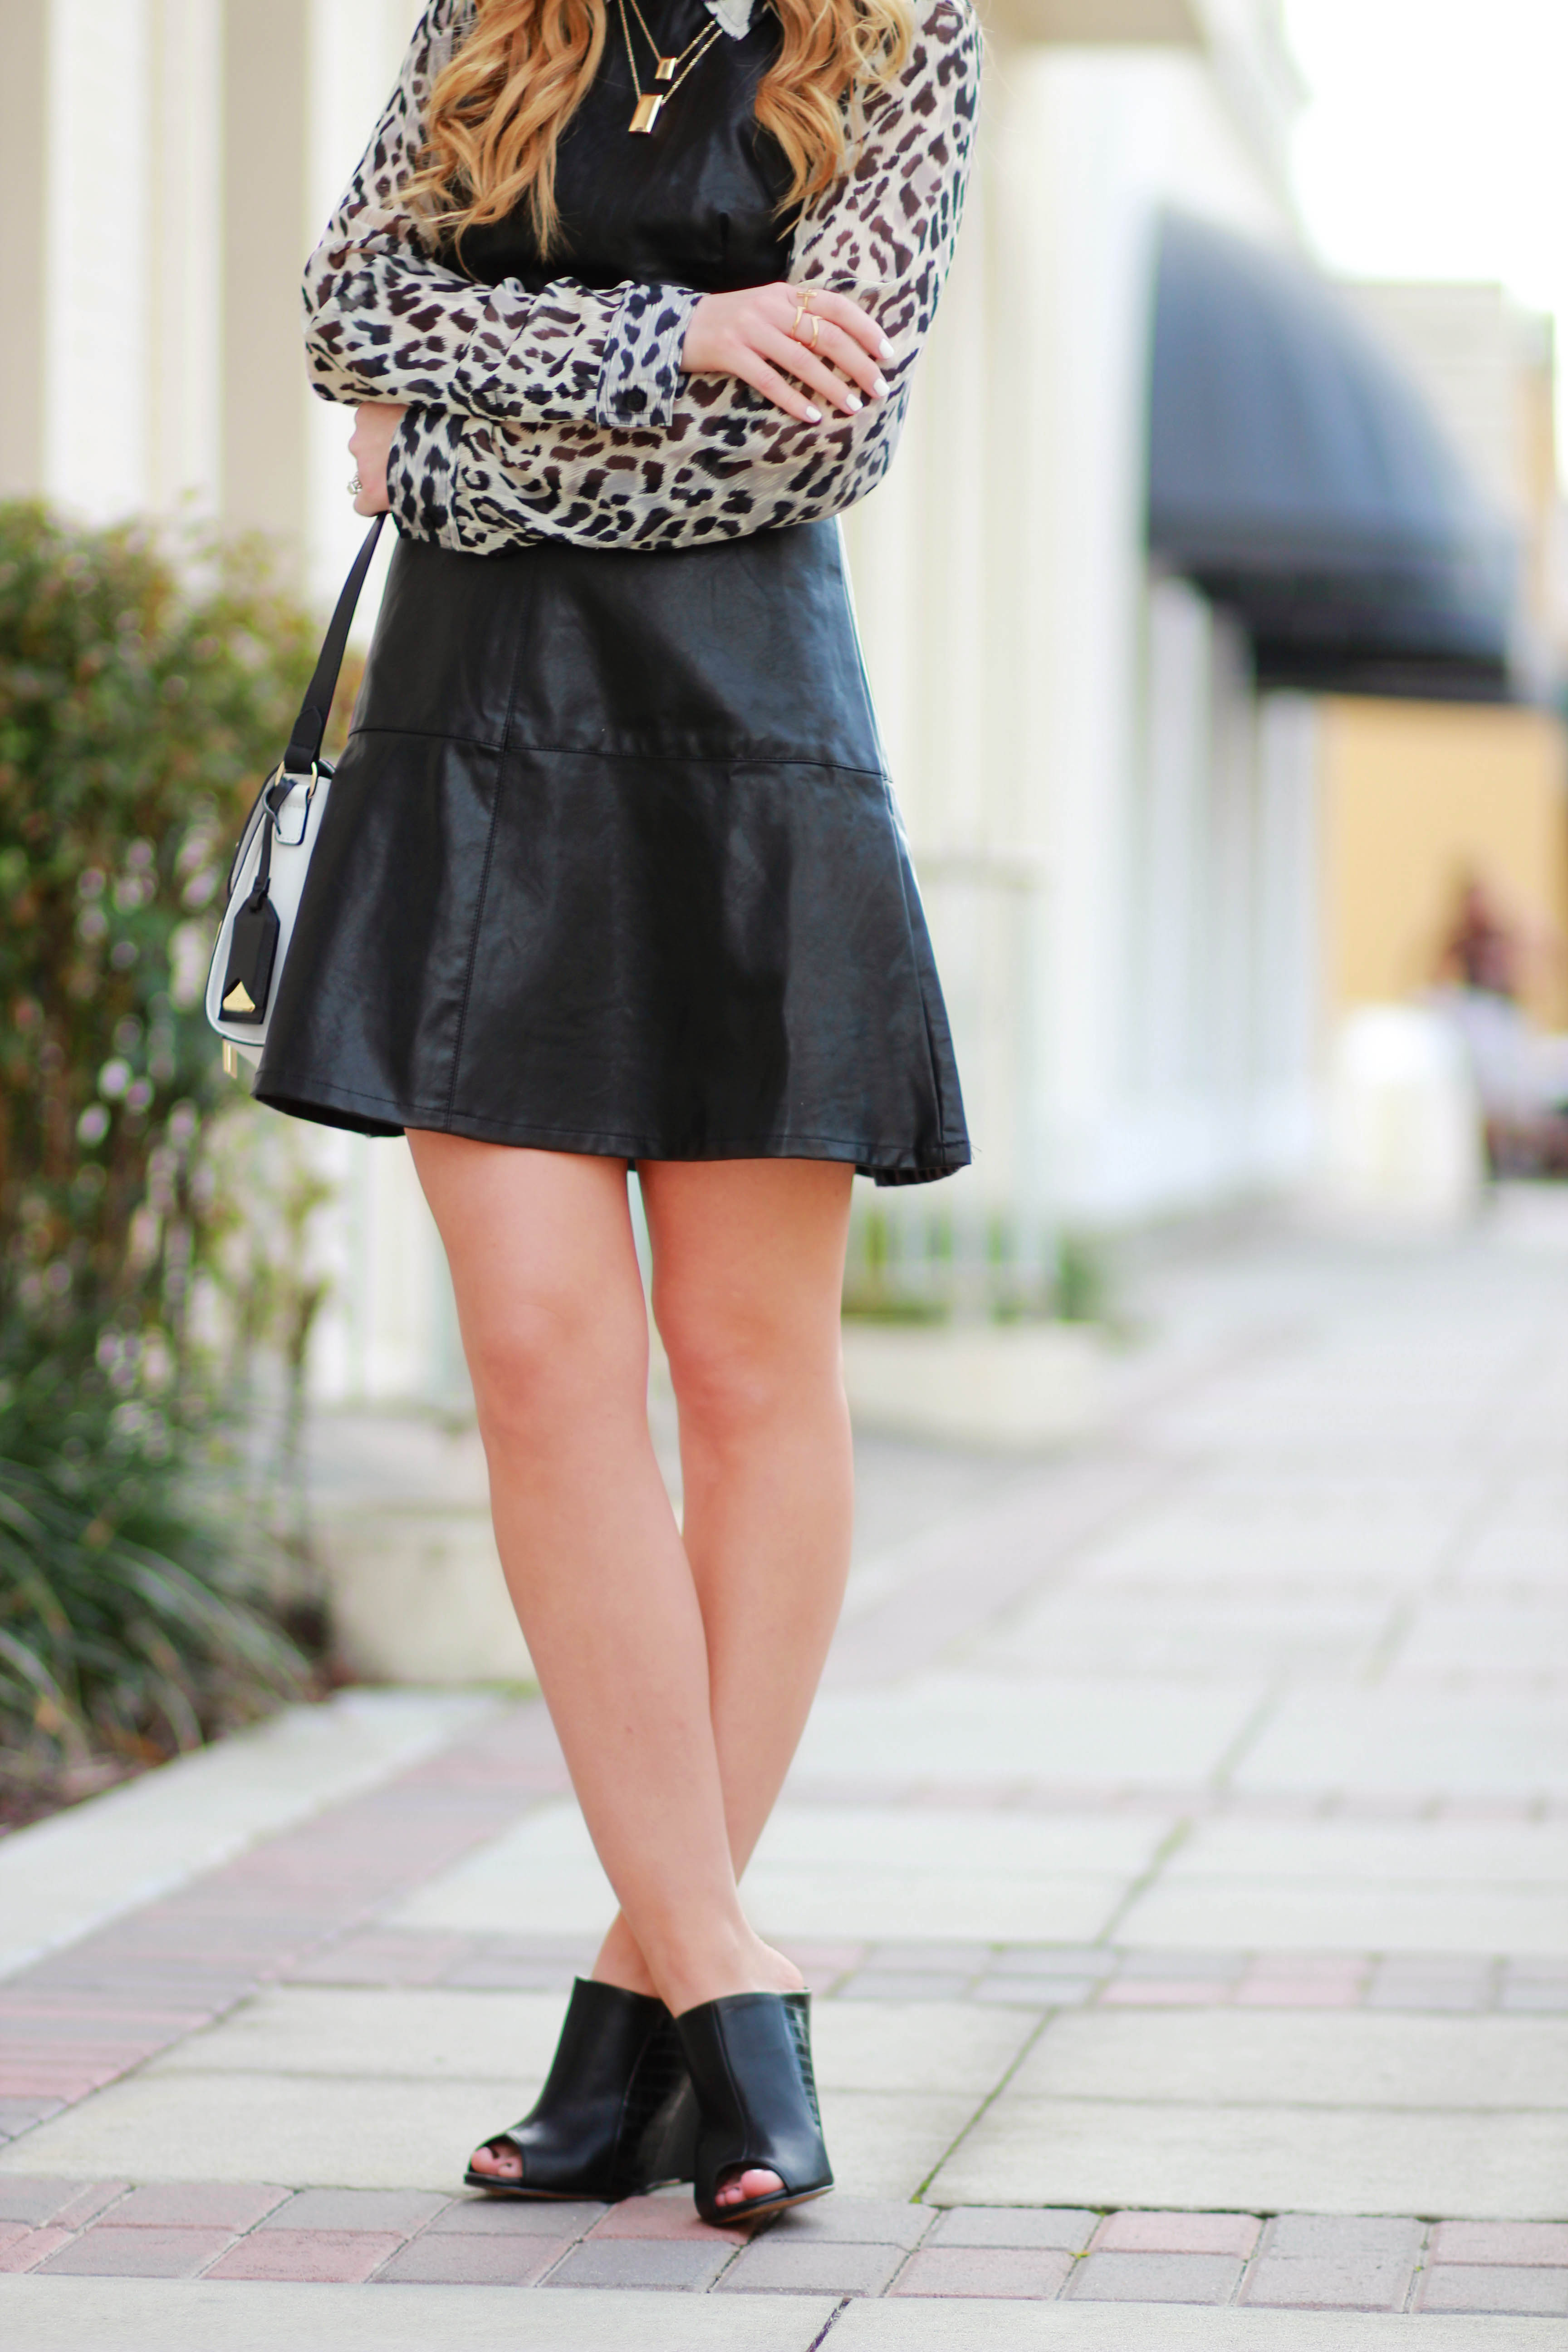 orlando, florida fashion blogger styles forever 21 leather dress and leopard blouse with vince camuto crossbody bag for a casual winter outfit